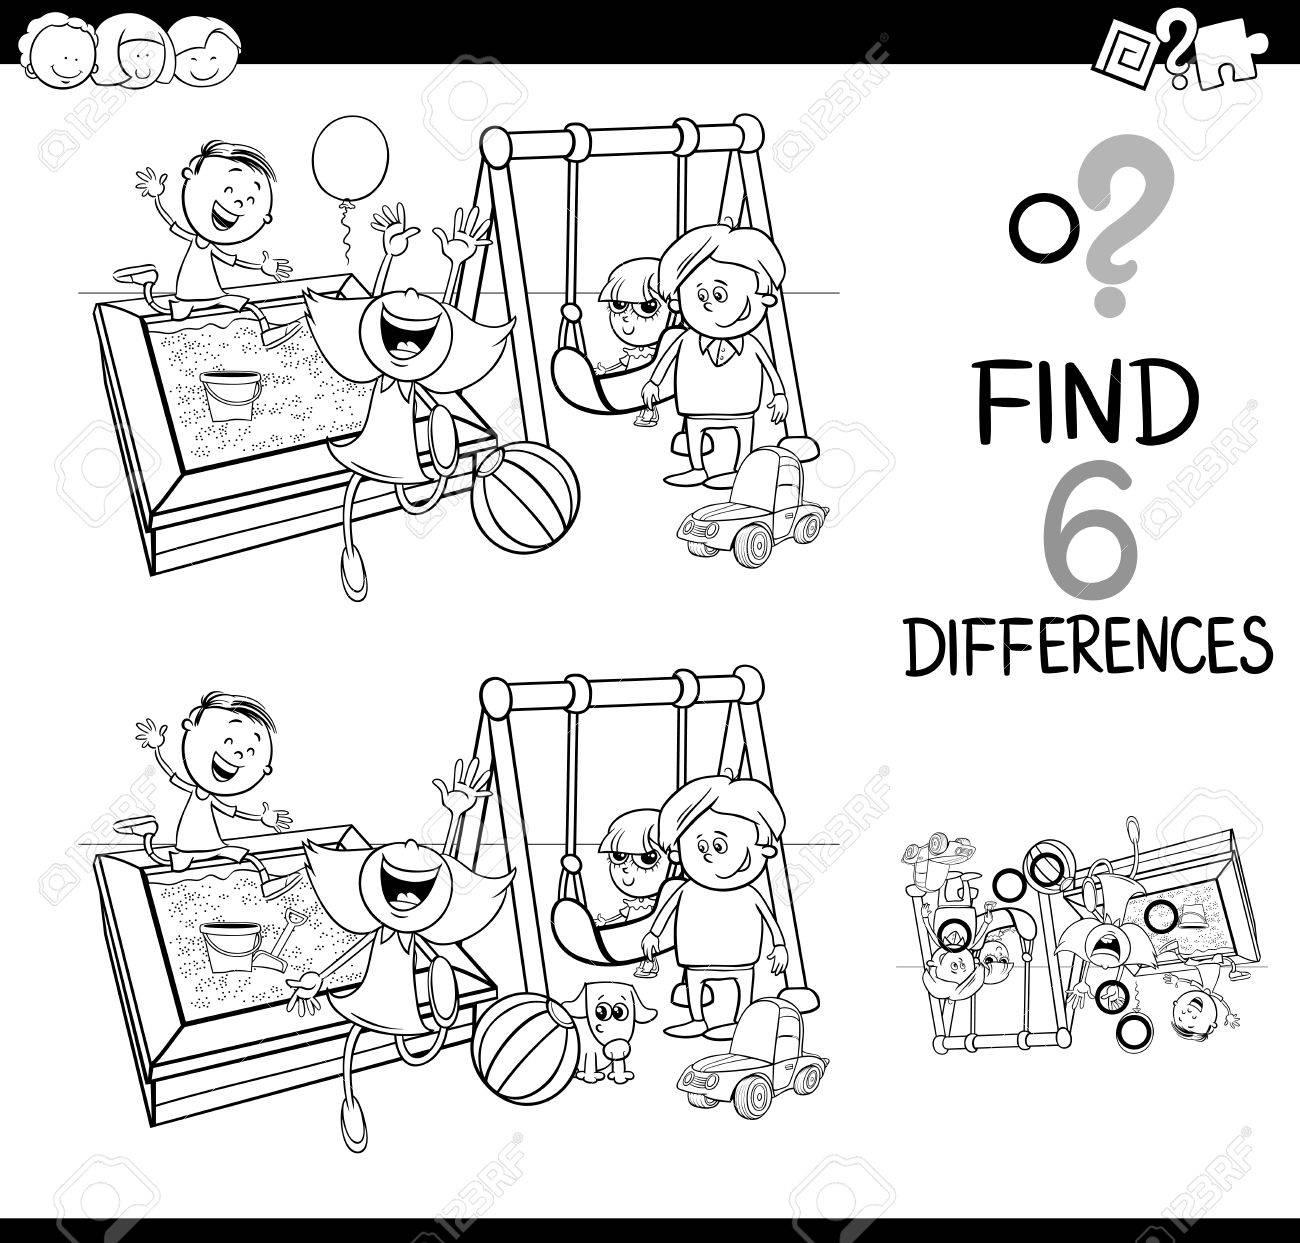 Childrens educational coloring activity book - Black And White Cartoon Illustration Of Finding The Difference Educational Activity For Children With Kids On